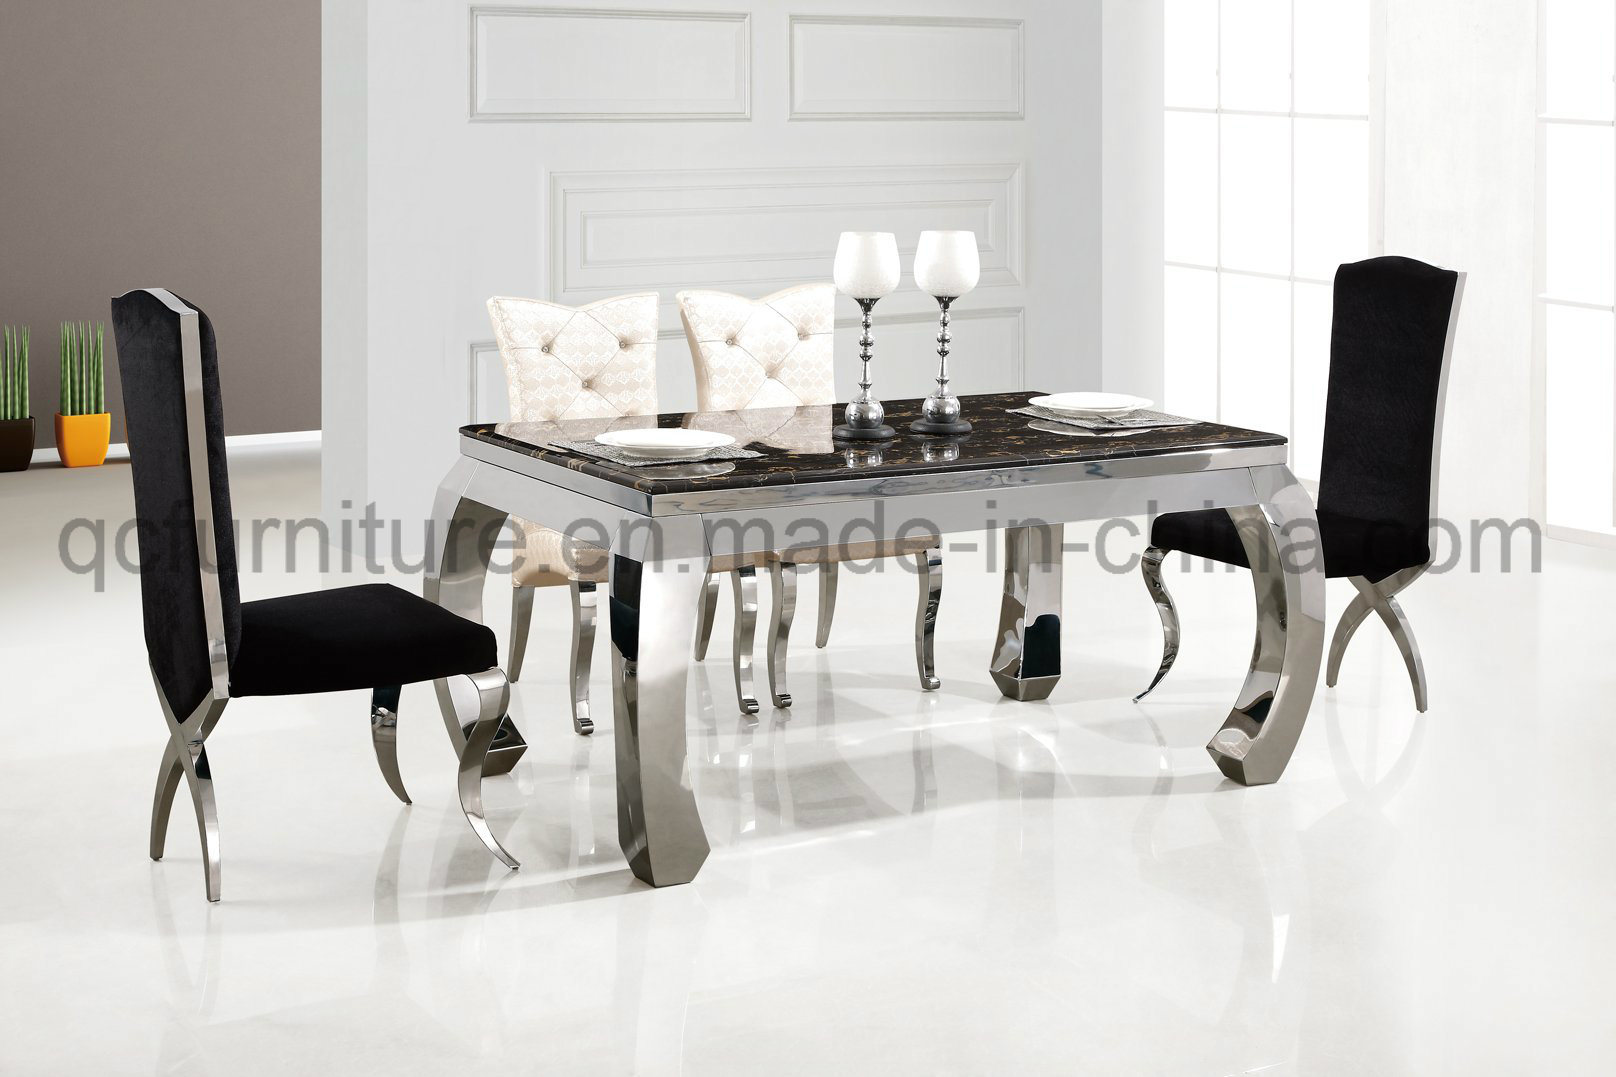 best quality dining room furniture. China 2017 Hot Selling Good Quality Marble Dining Table And Chairs - Table, Best Room Furniture D